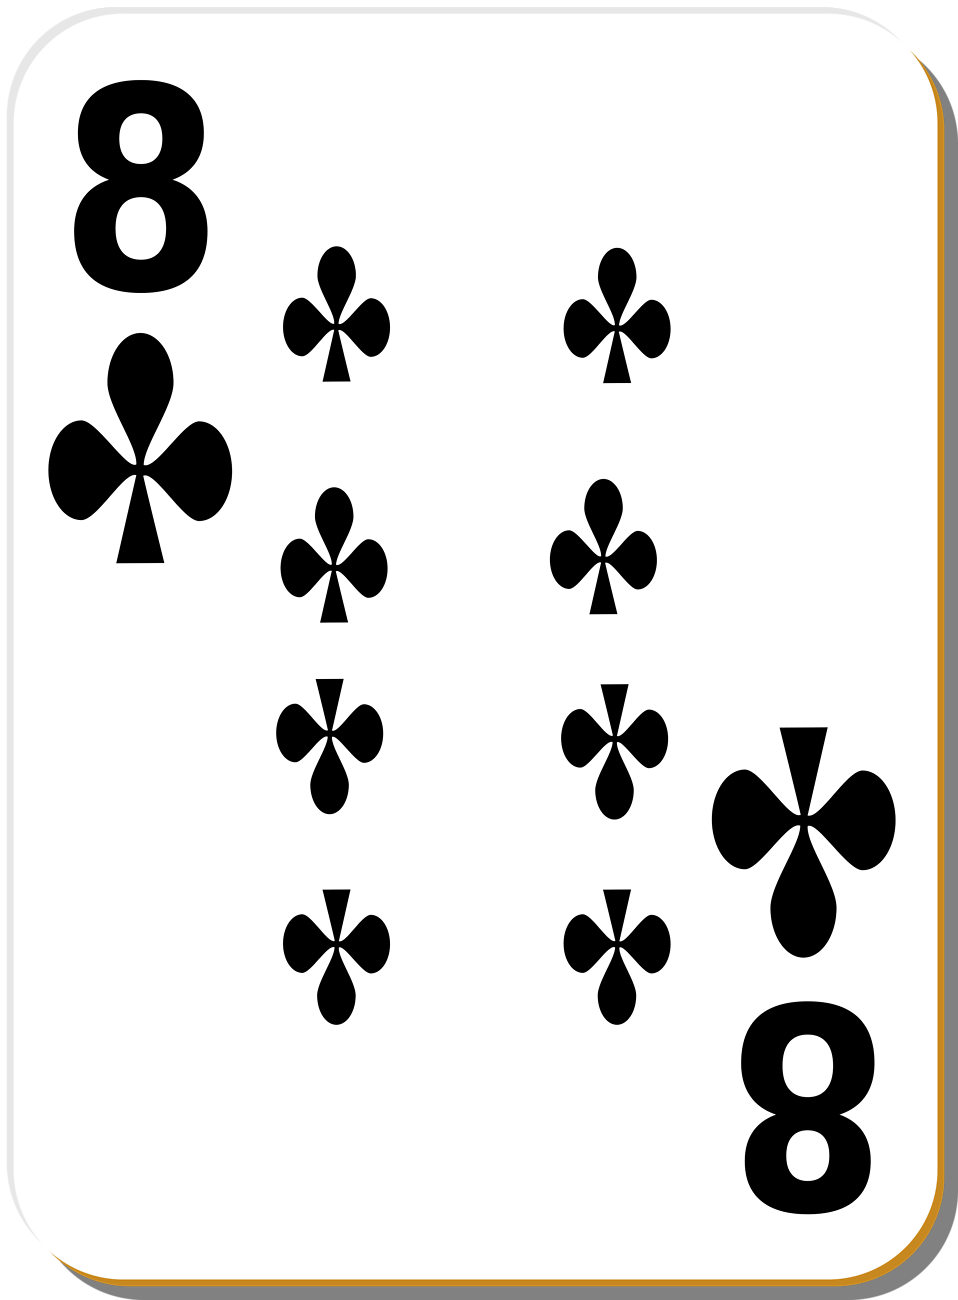 Illustration of an Eight of Clubs playing card : Free Stock Photo